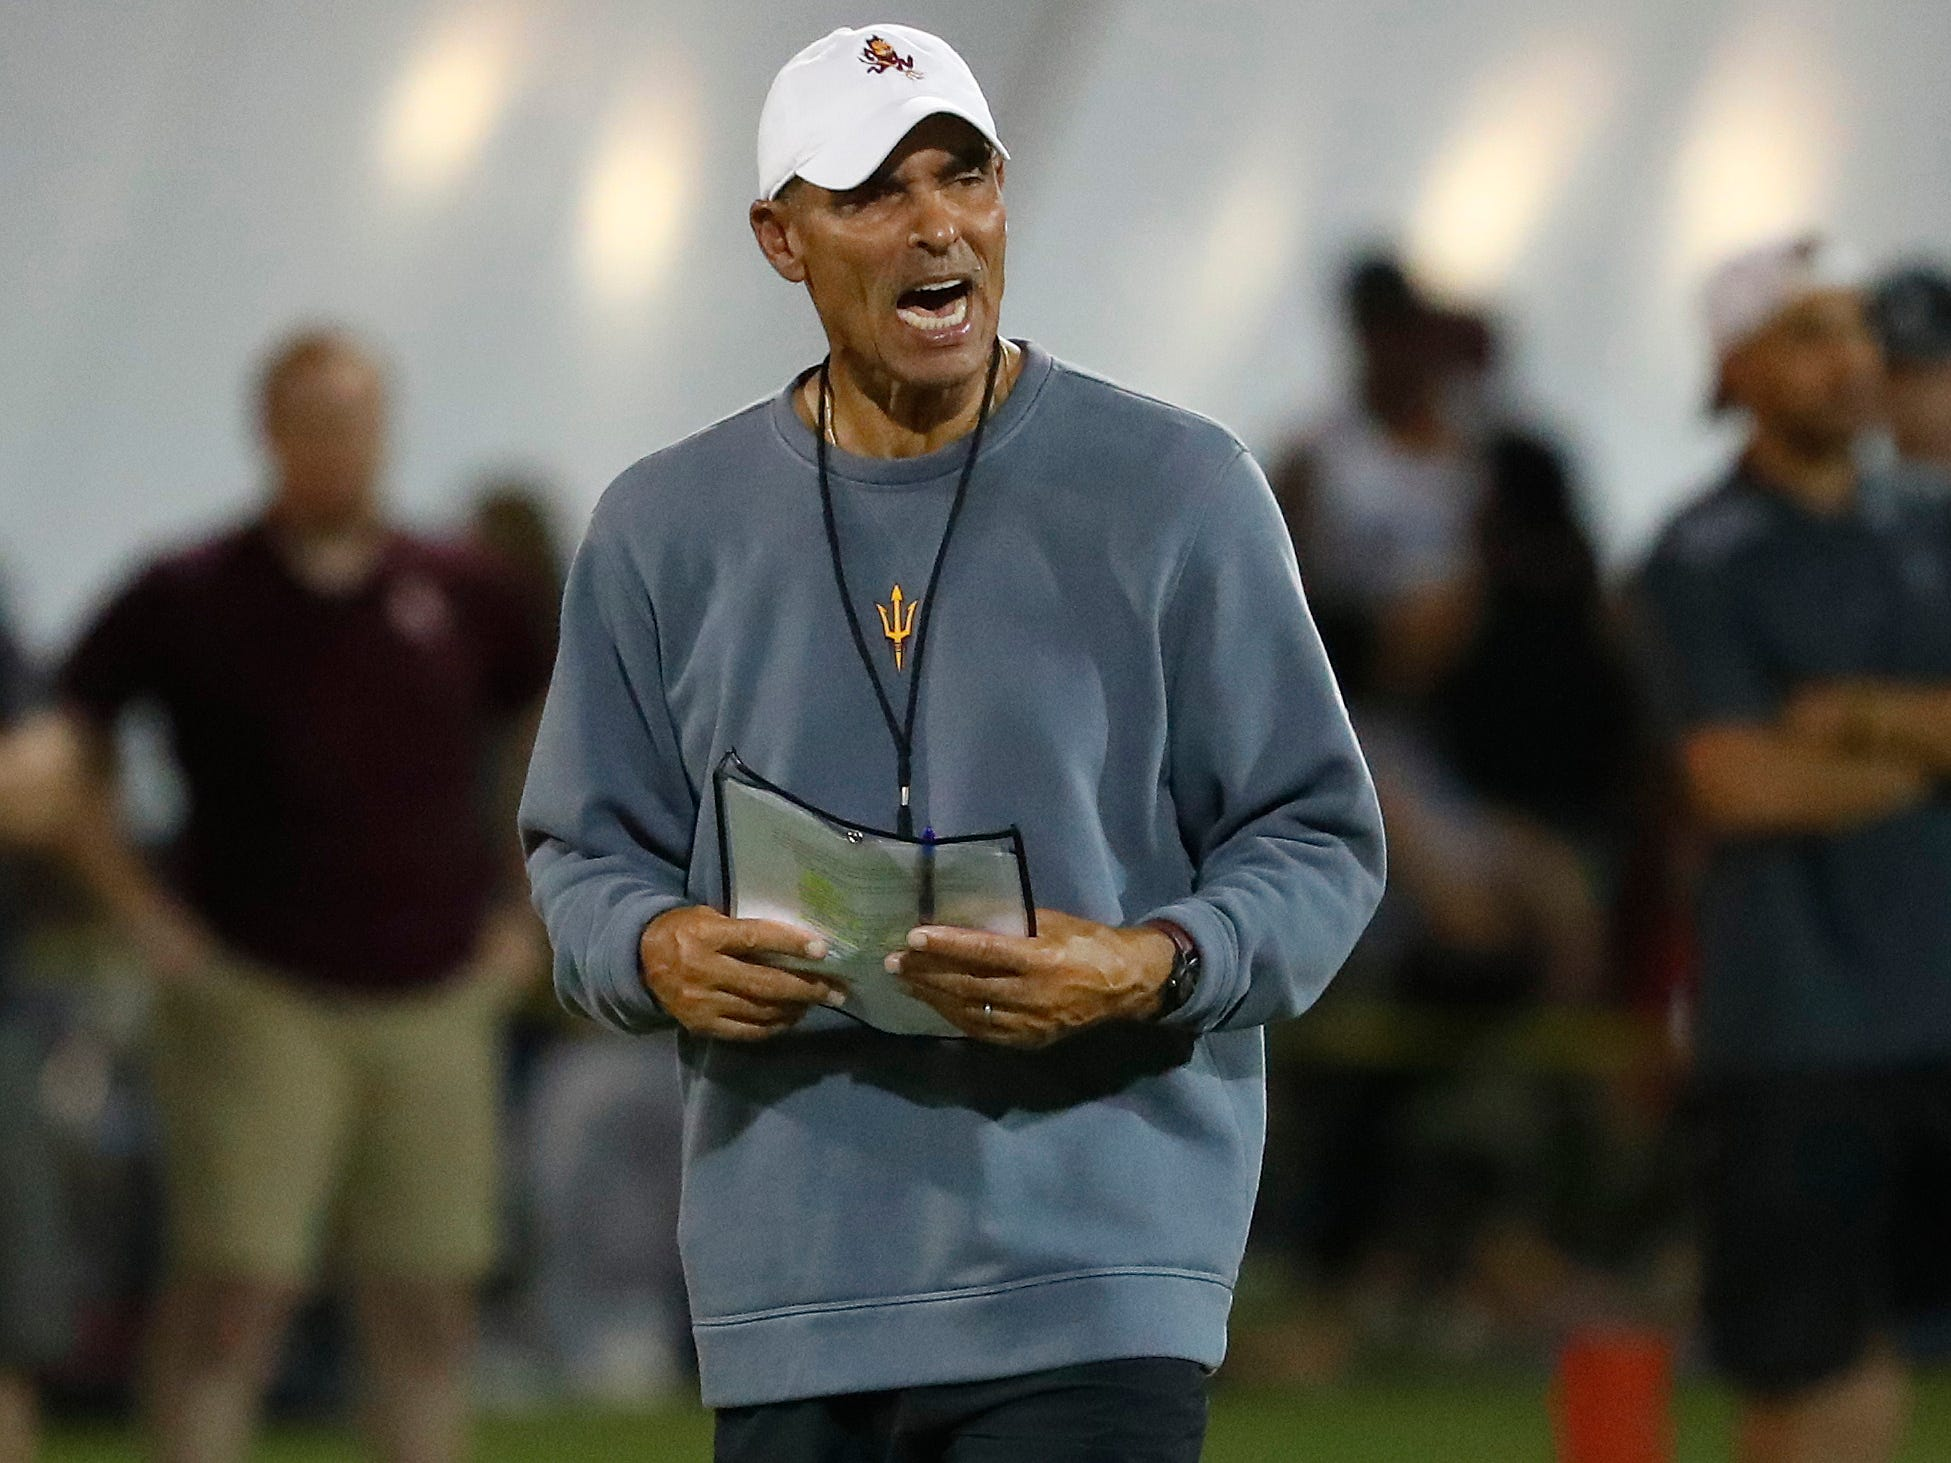 ASU's head coach Herm Edwards instructs his team during the ASU scrimmage at Kajikawa Practice Fields in Tempe, Ariz. on Aug. 11, 2018.